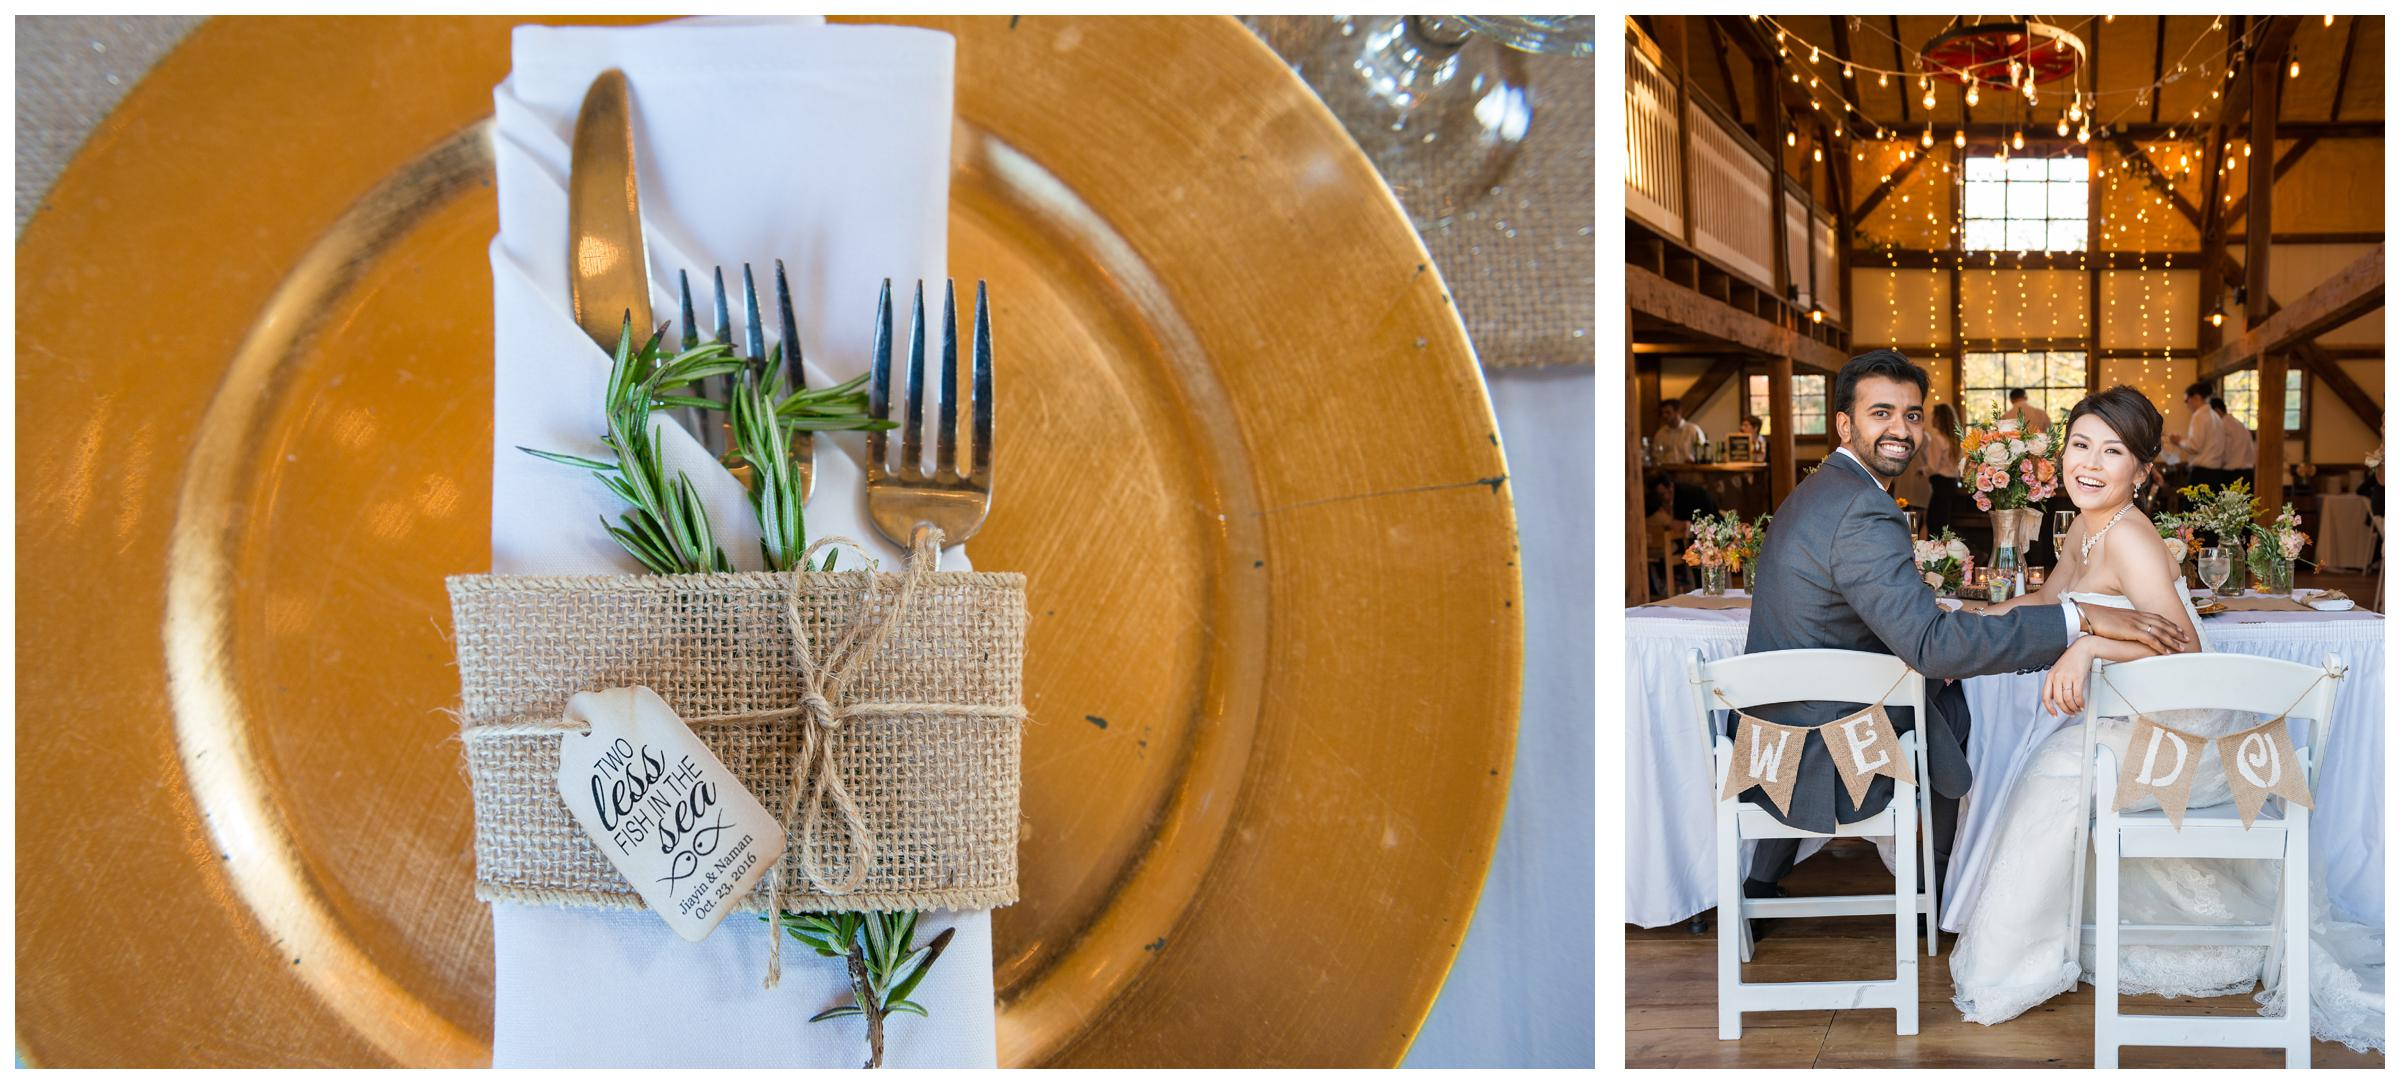 bride and groom with gold decor at rustic barn wedding reception